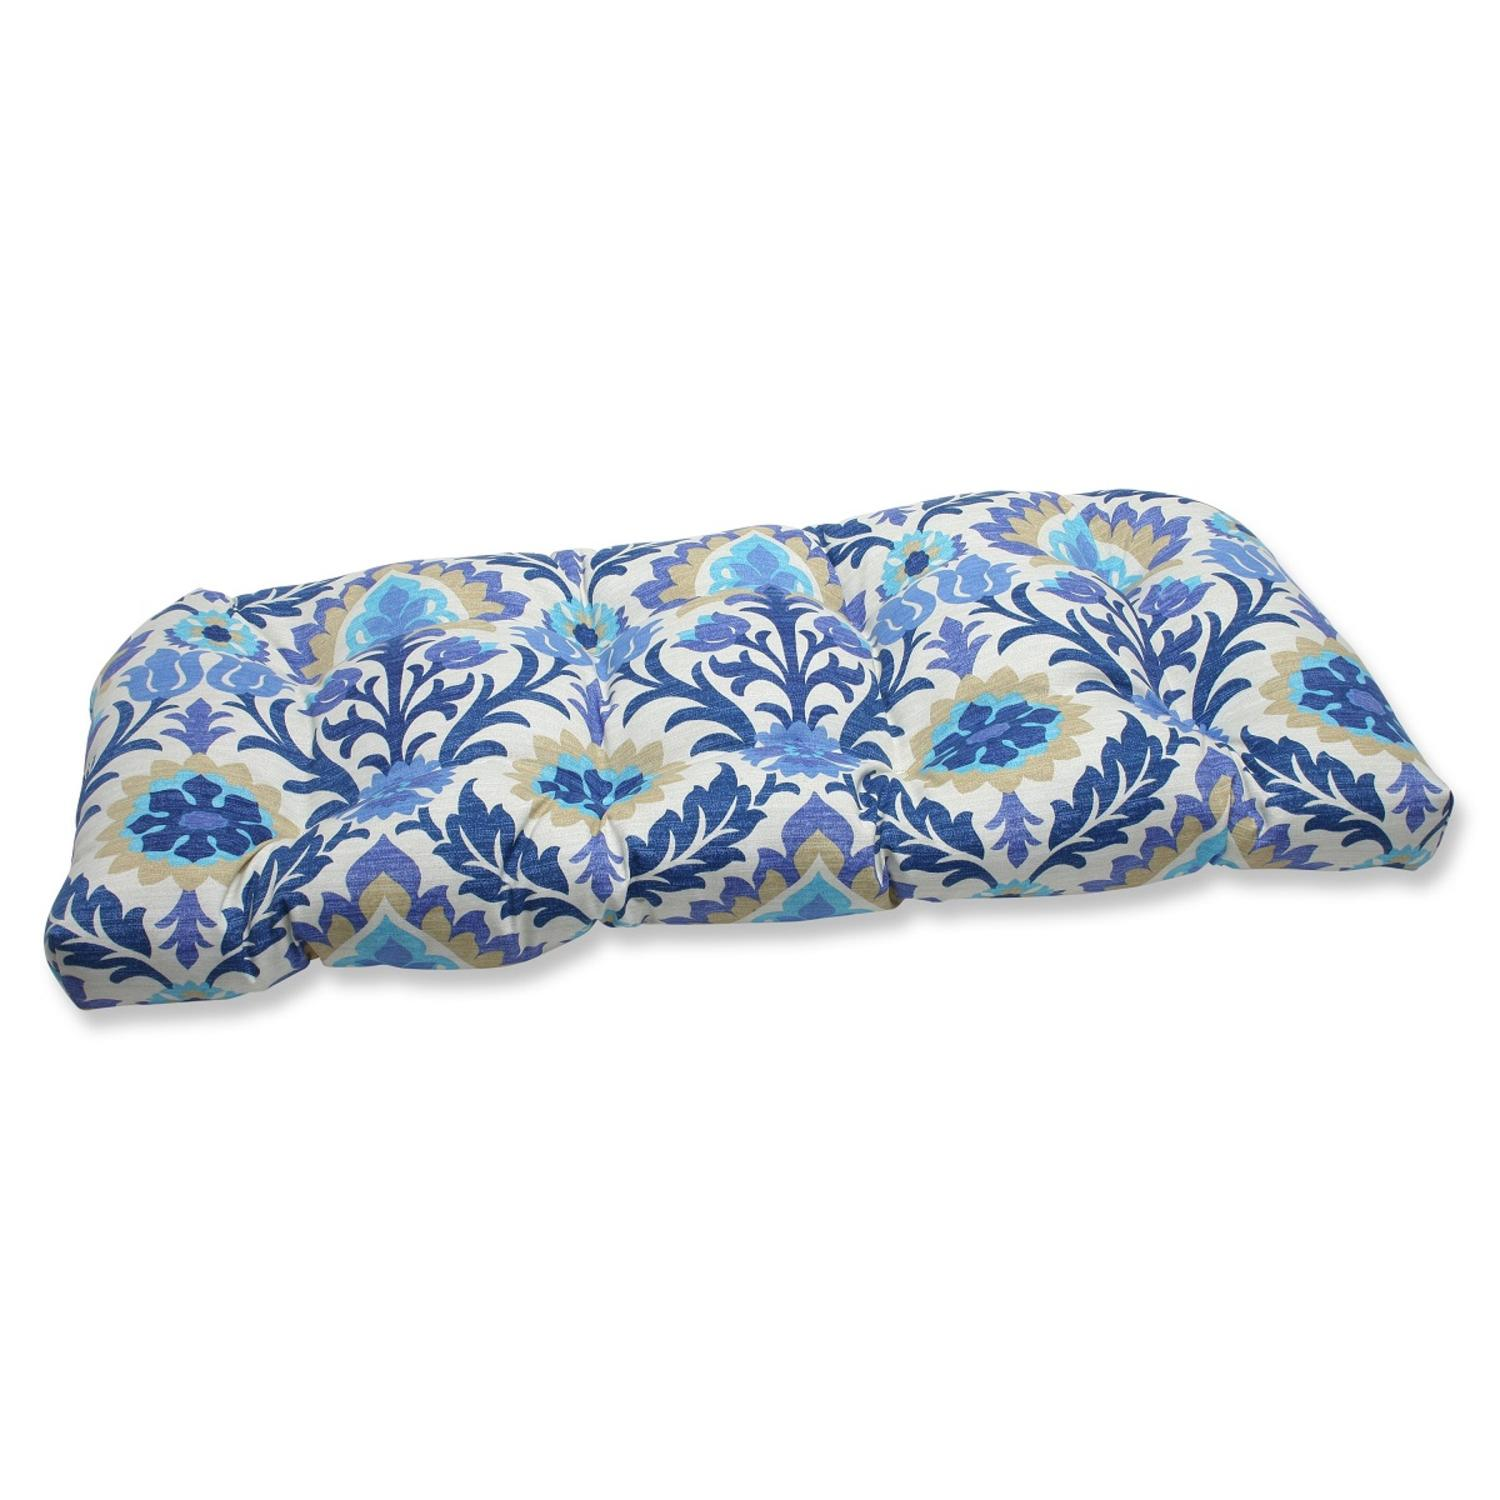 "44"" Dream Garden Blue, Light Taupe and Ivory Damask Outdoor Patio Tufted Wicker Loveseat Cushion"